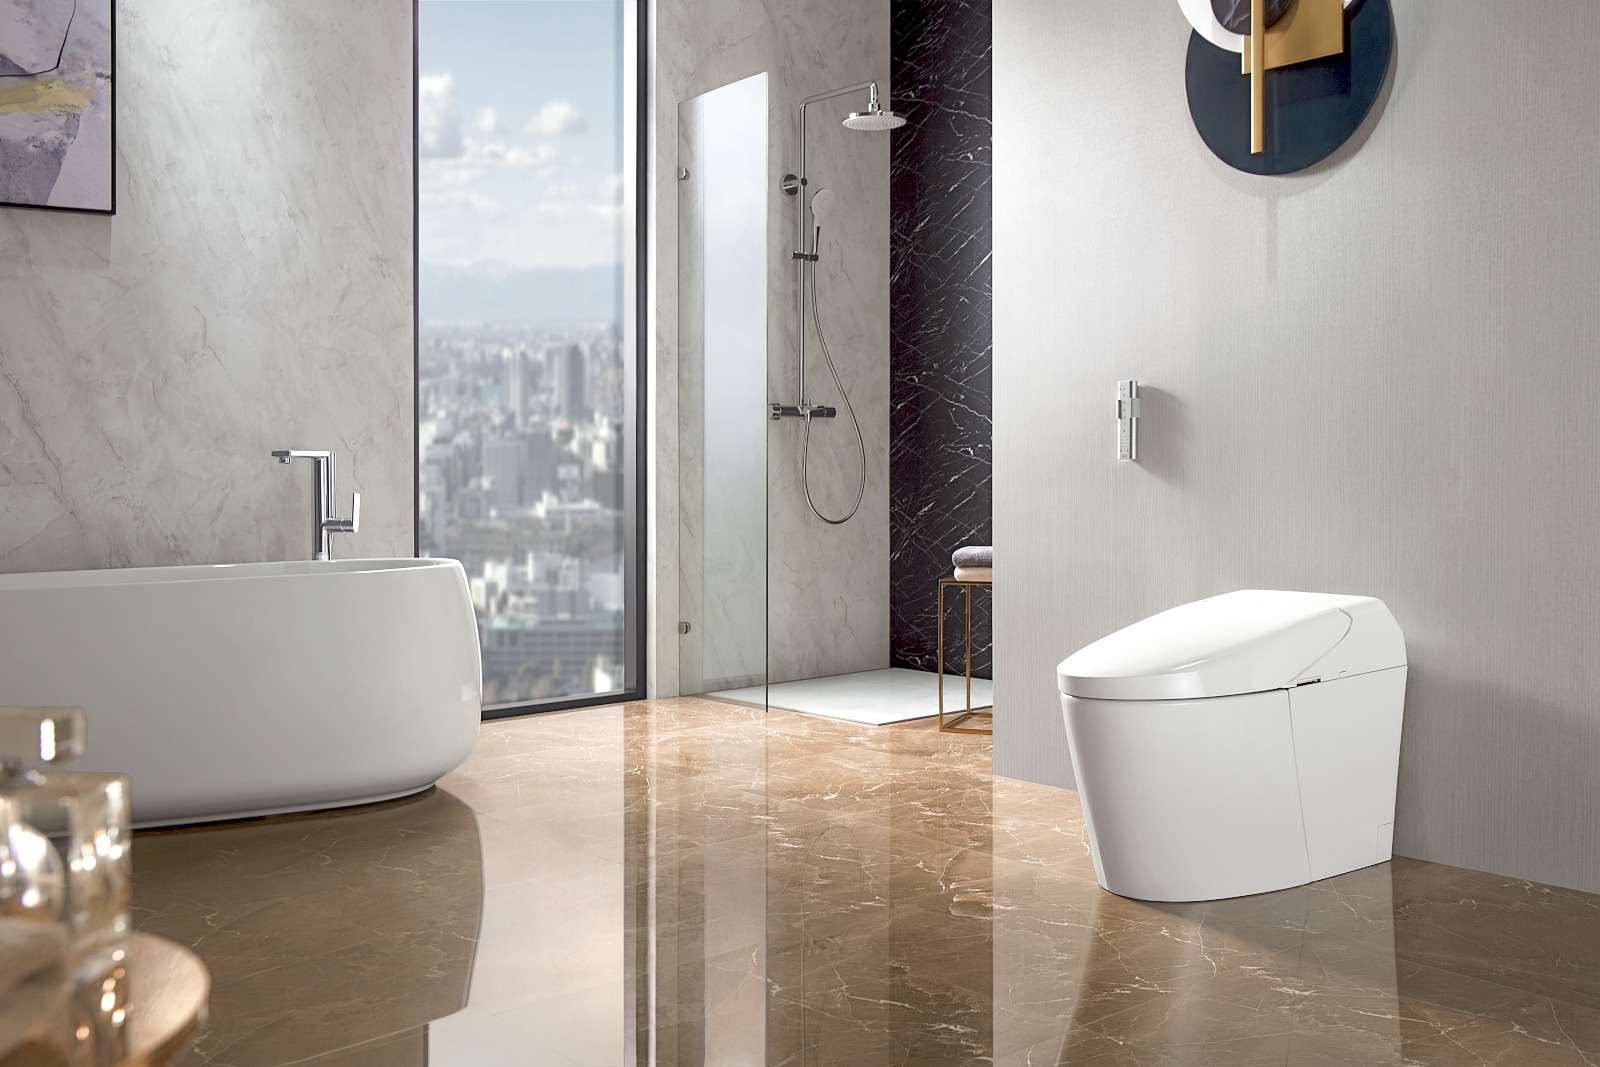 Red Dot Design Award 2021 WASHLET G5 Roomscene